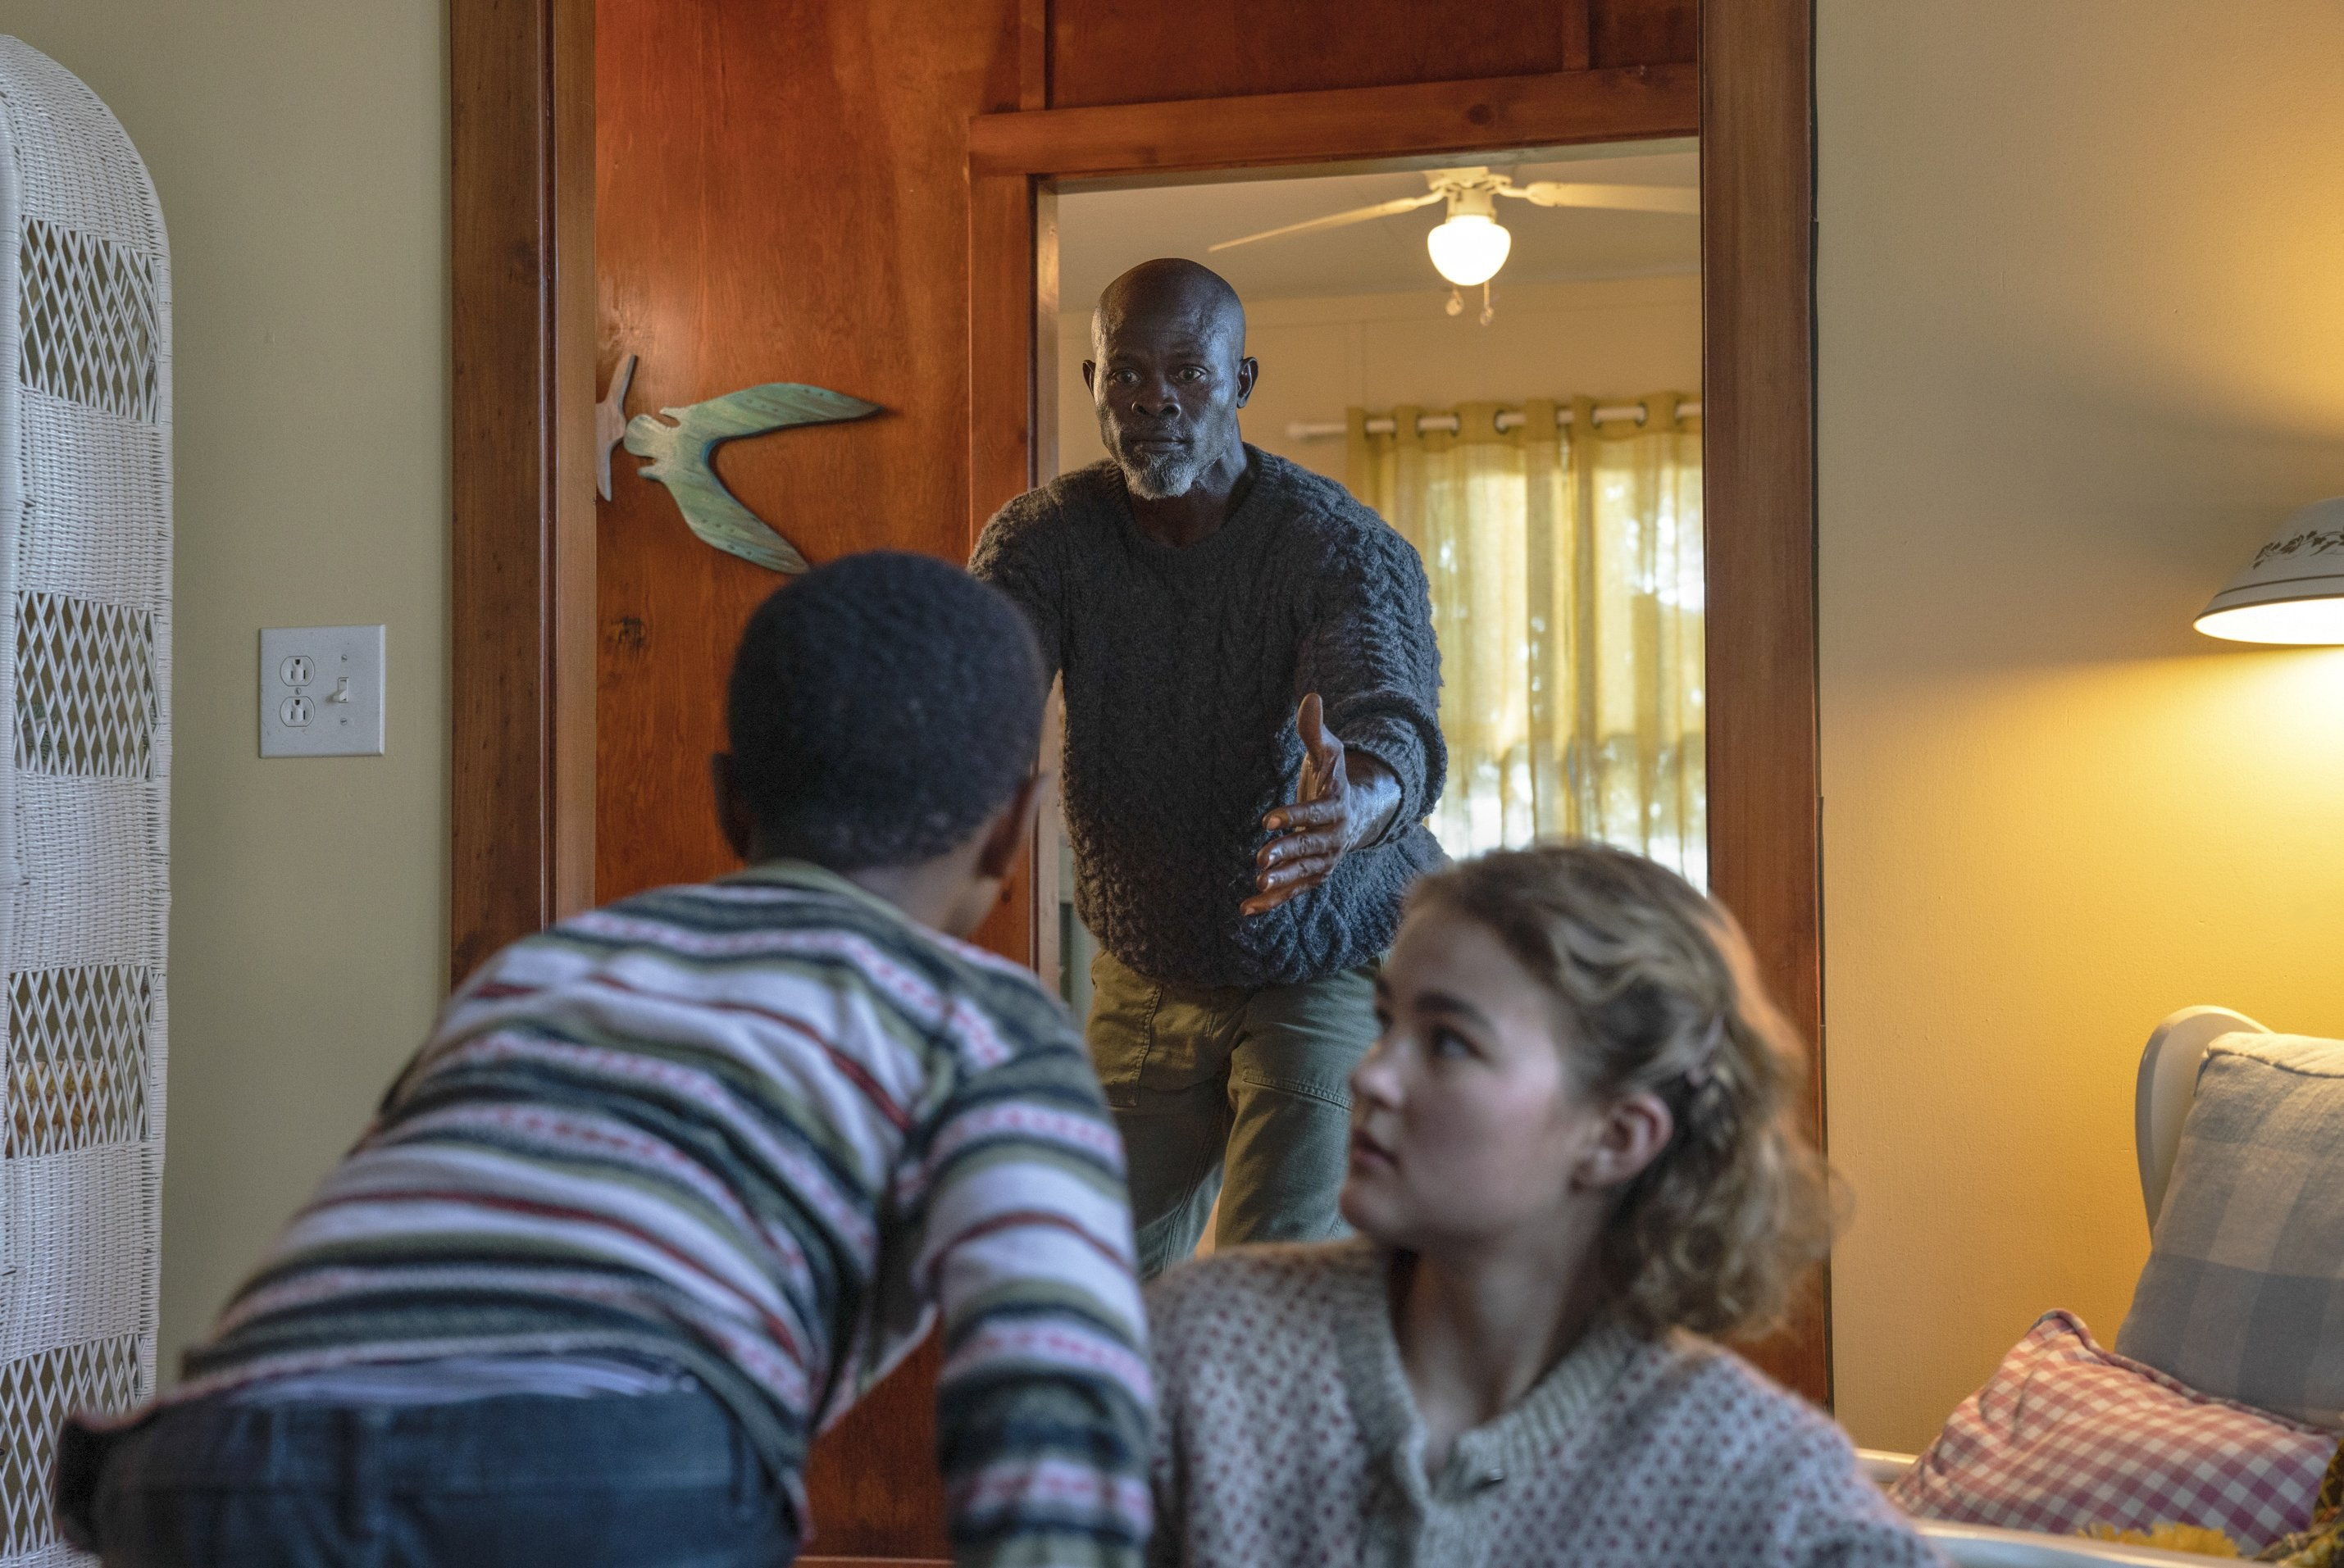 Actor Djimon Hounsou, in the background, calls a kid towards him who is sitting with Millicent Simmonds, in a scene from 'A Quiet Place Part II.' (Paramount Pictures via AP)